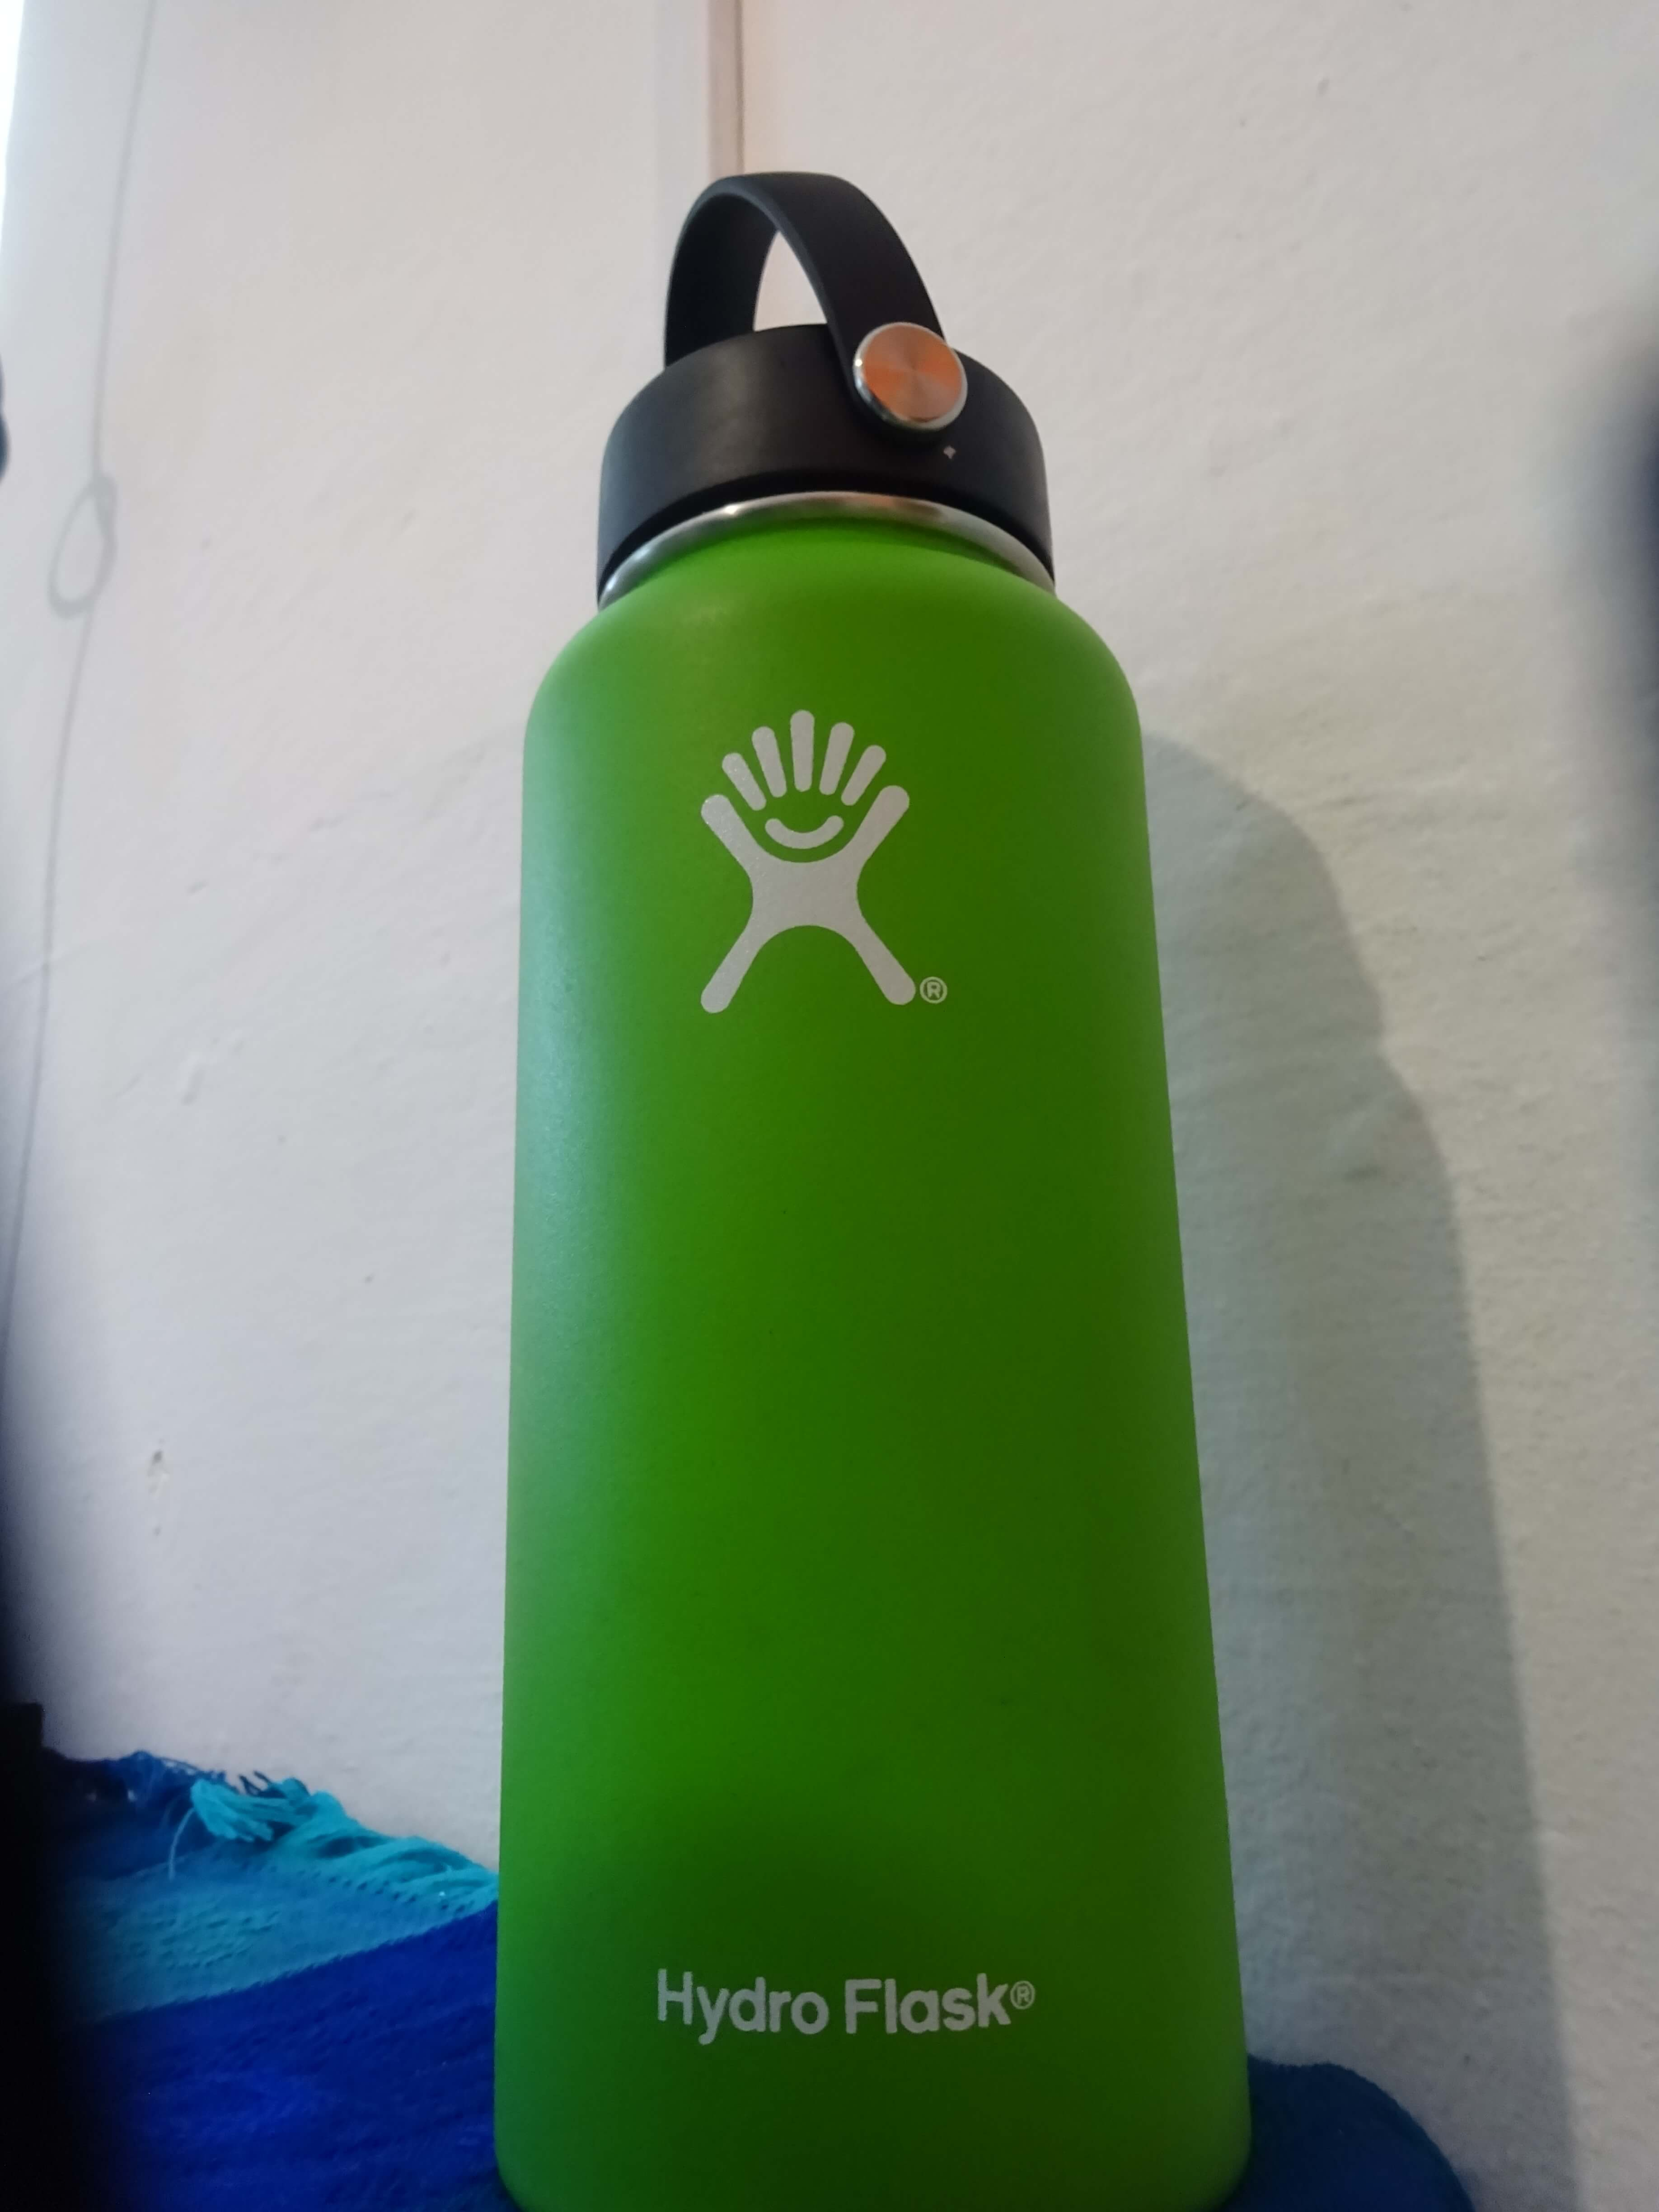 Hydro Flask - All Day Hydration At A Perfect Temperature